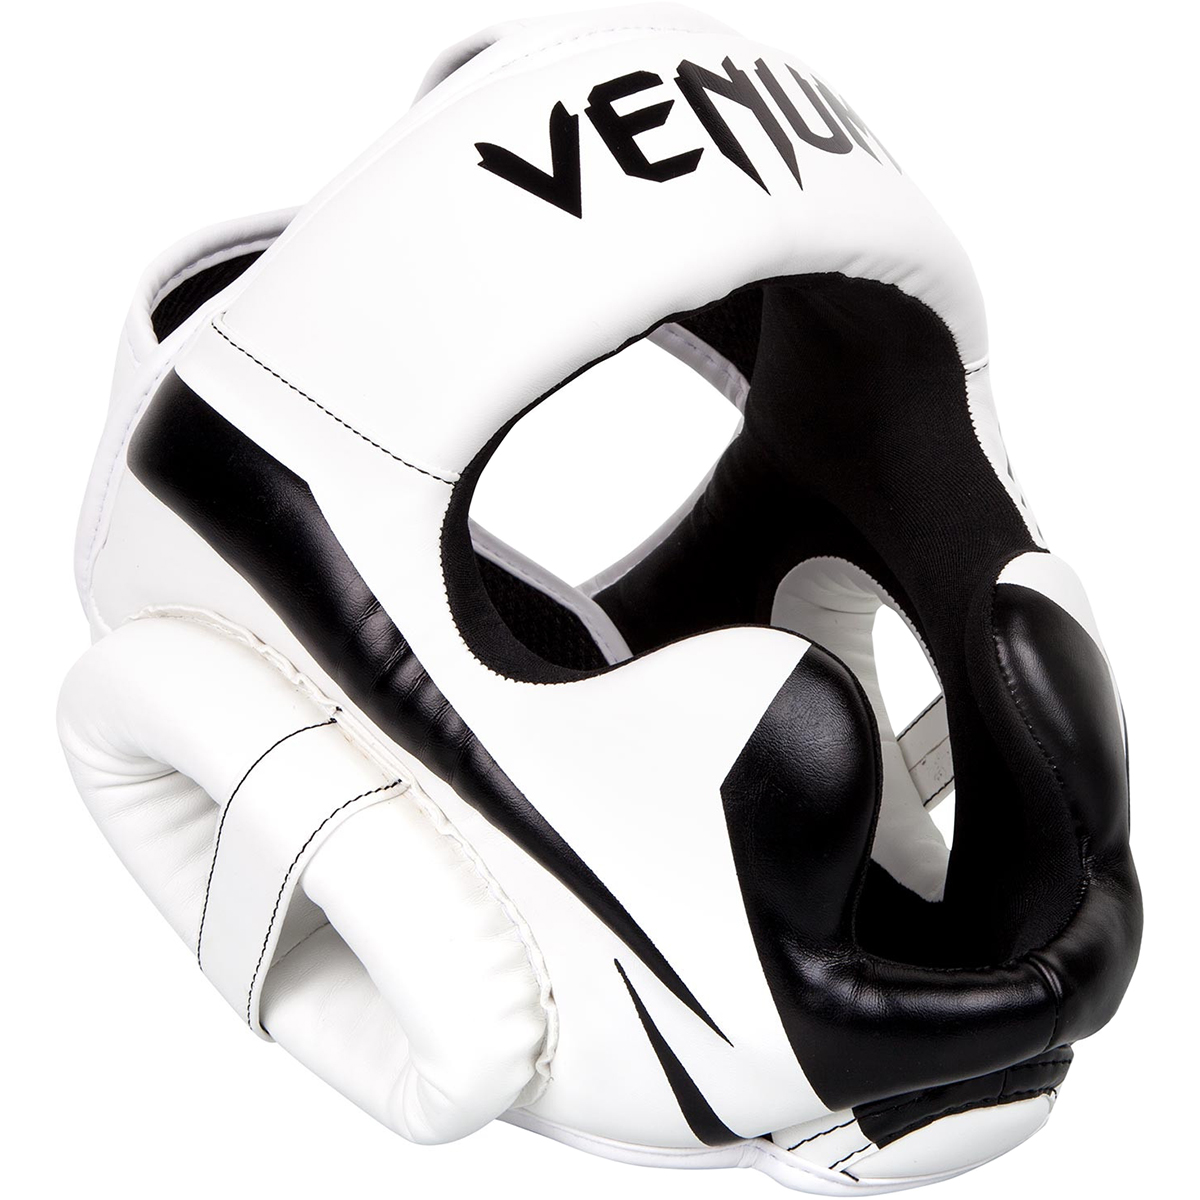 Venum-Elite-Boxing-Headgear thumbnail 44